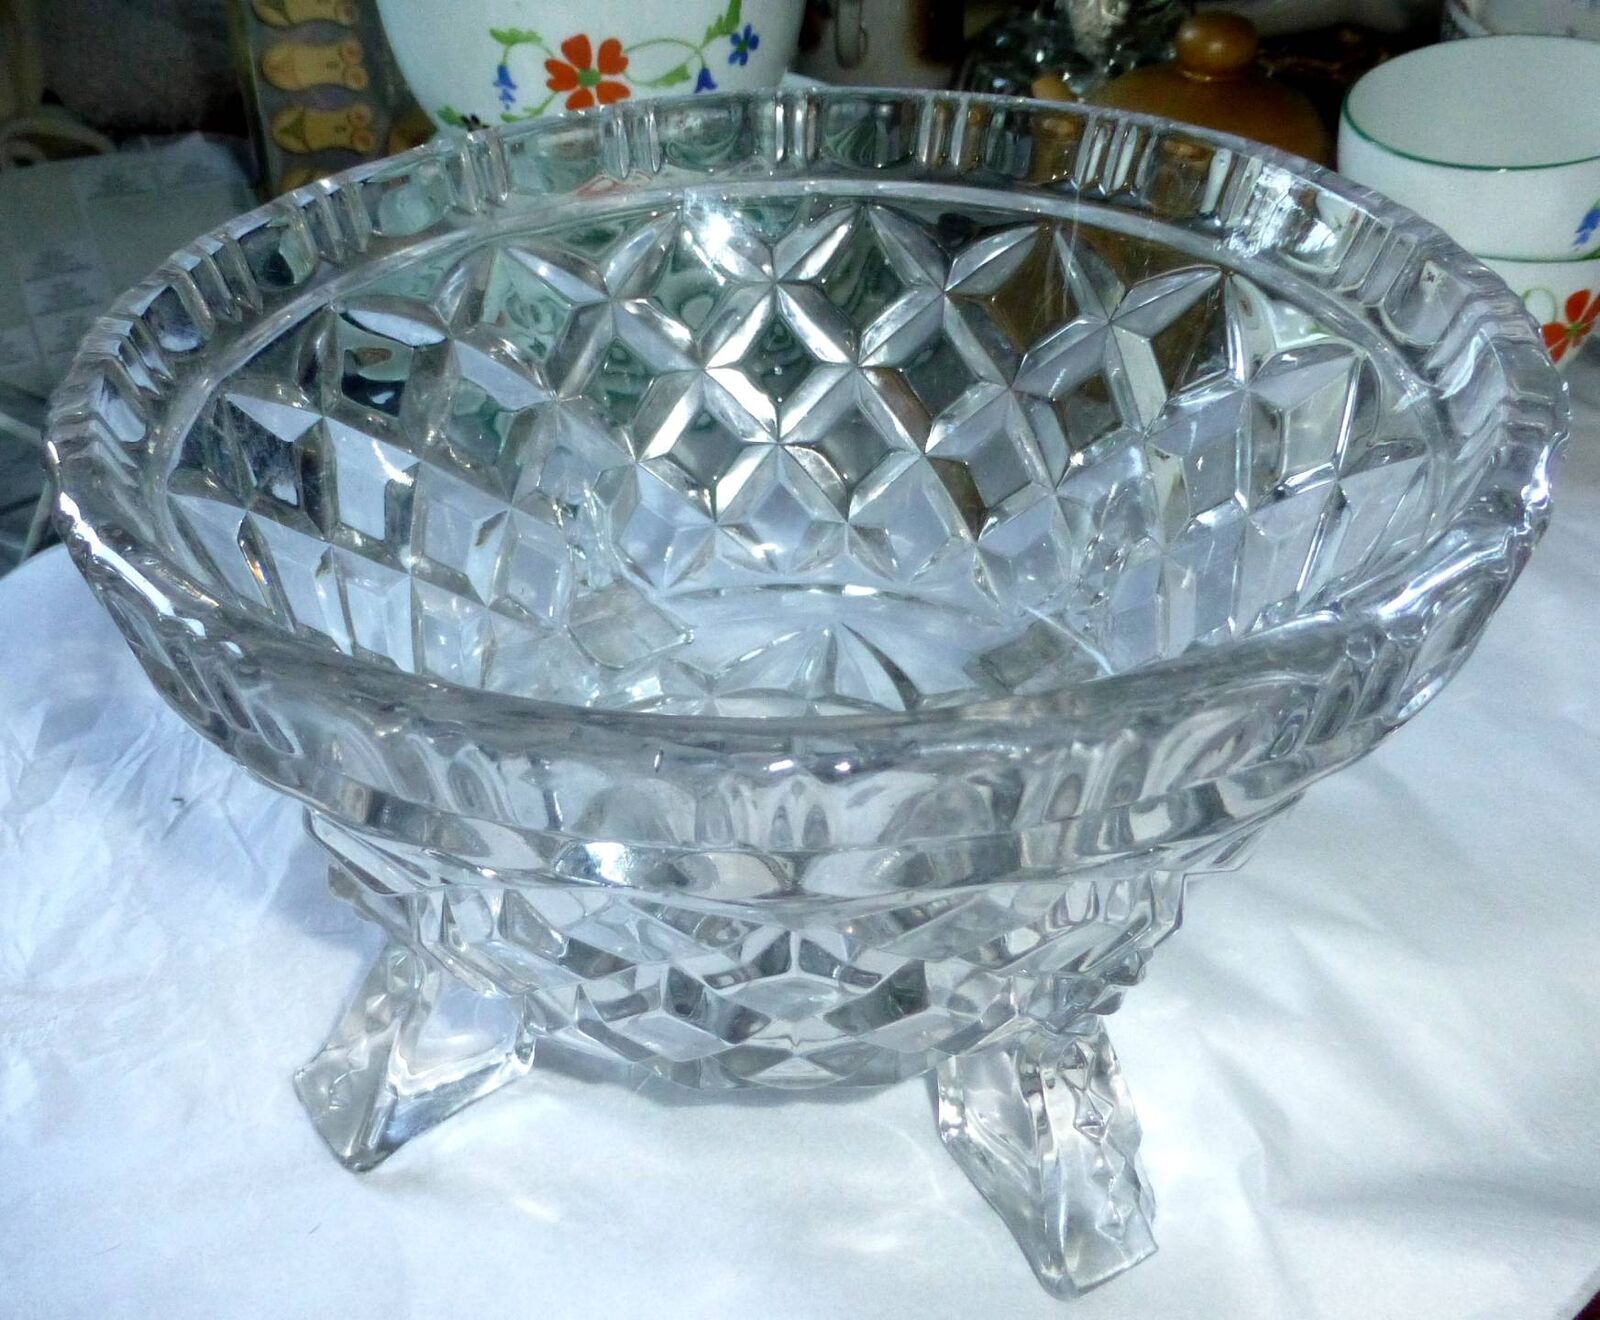 BOWL - ART DECO CUT GLASS BOWL VERY HEAVY -BEAUTIFUL